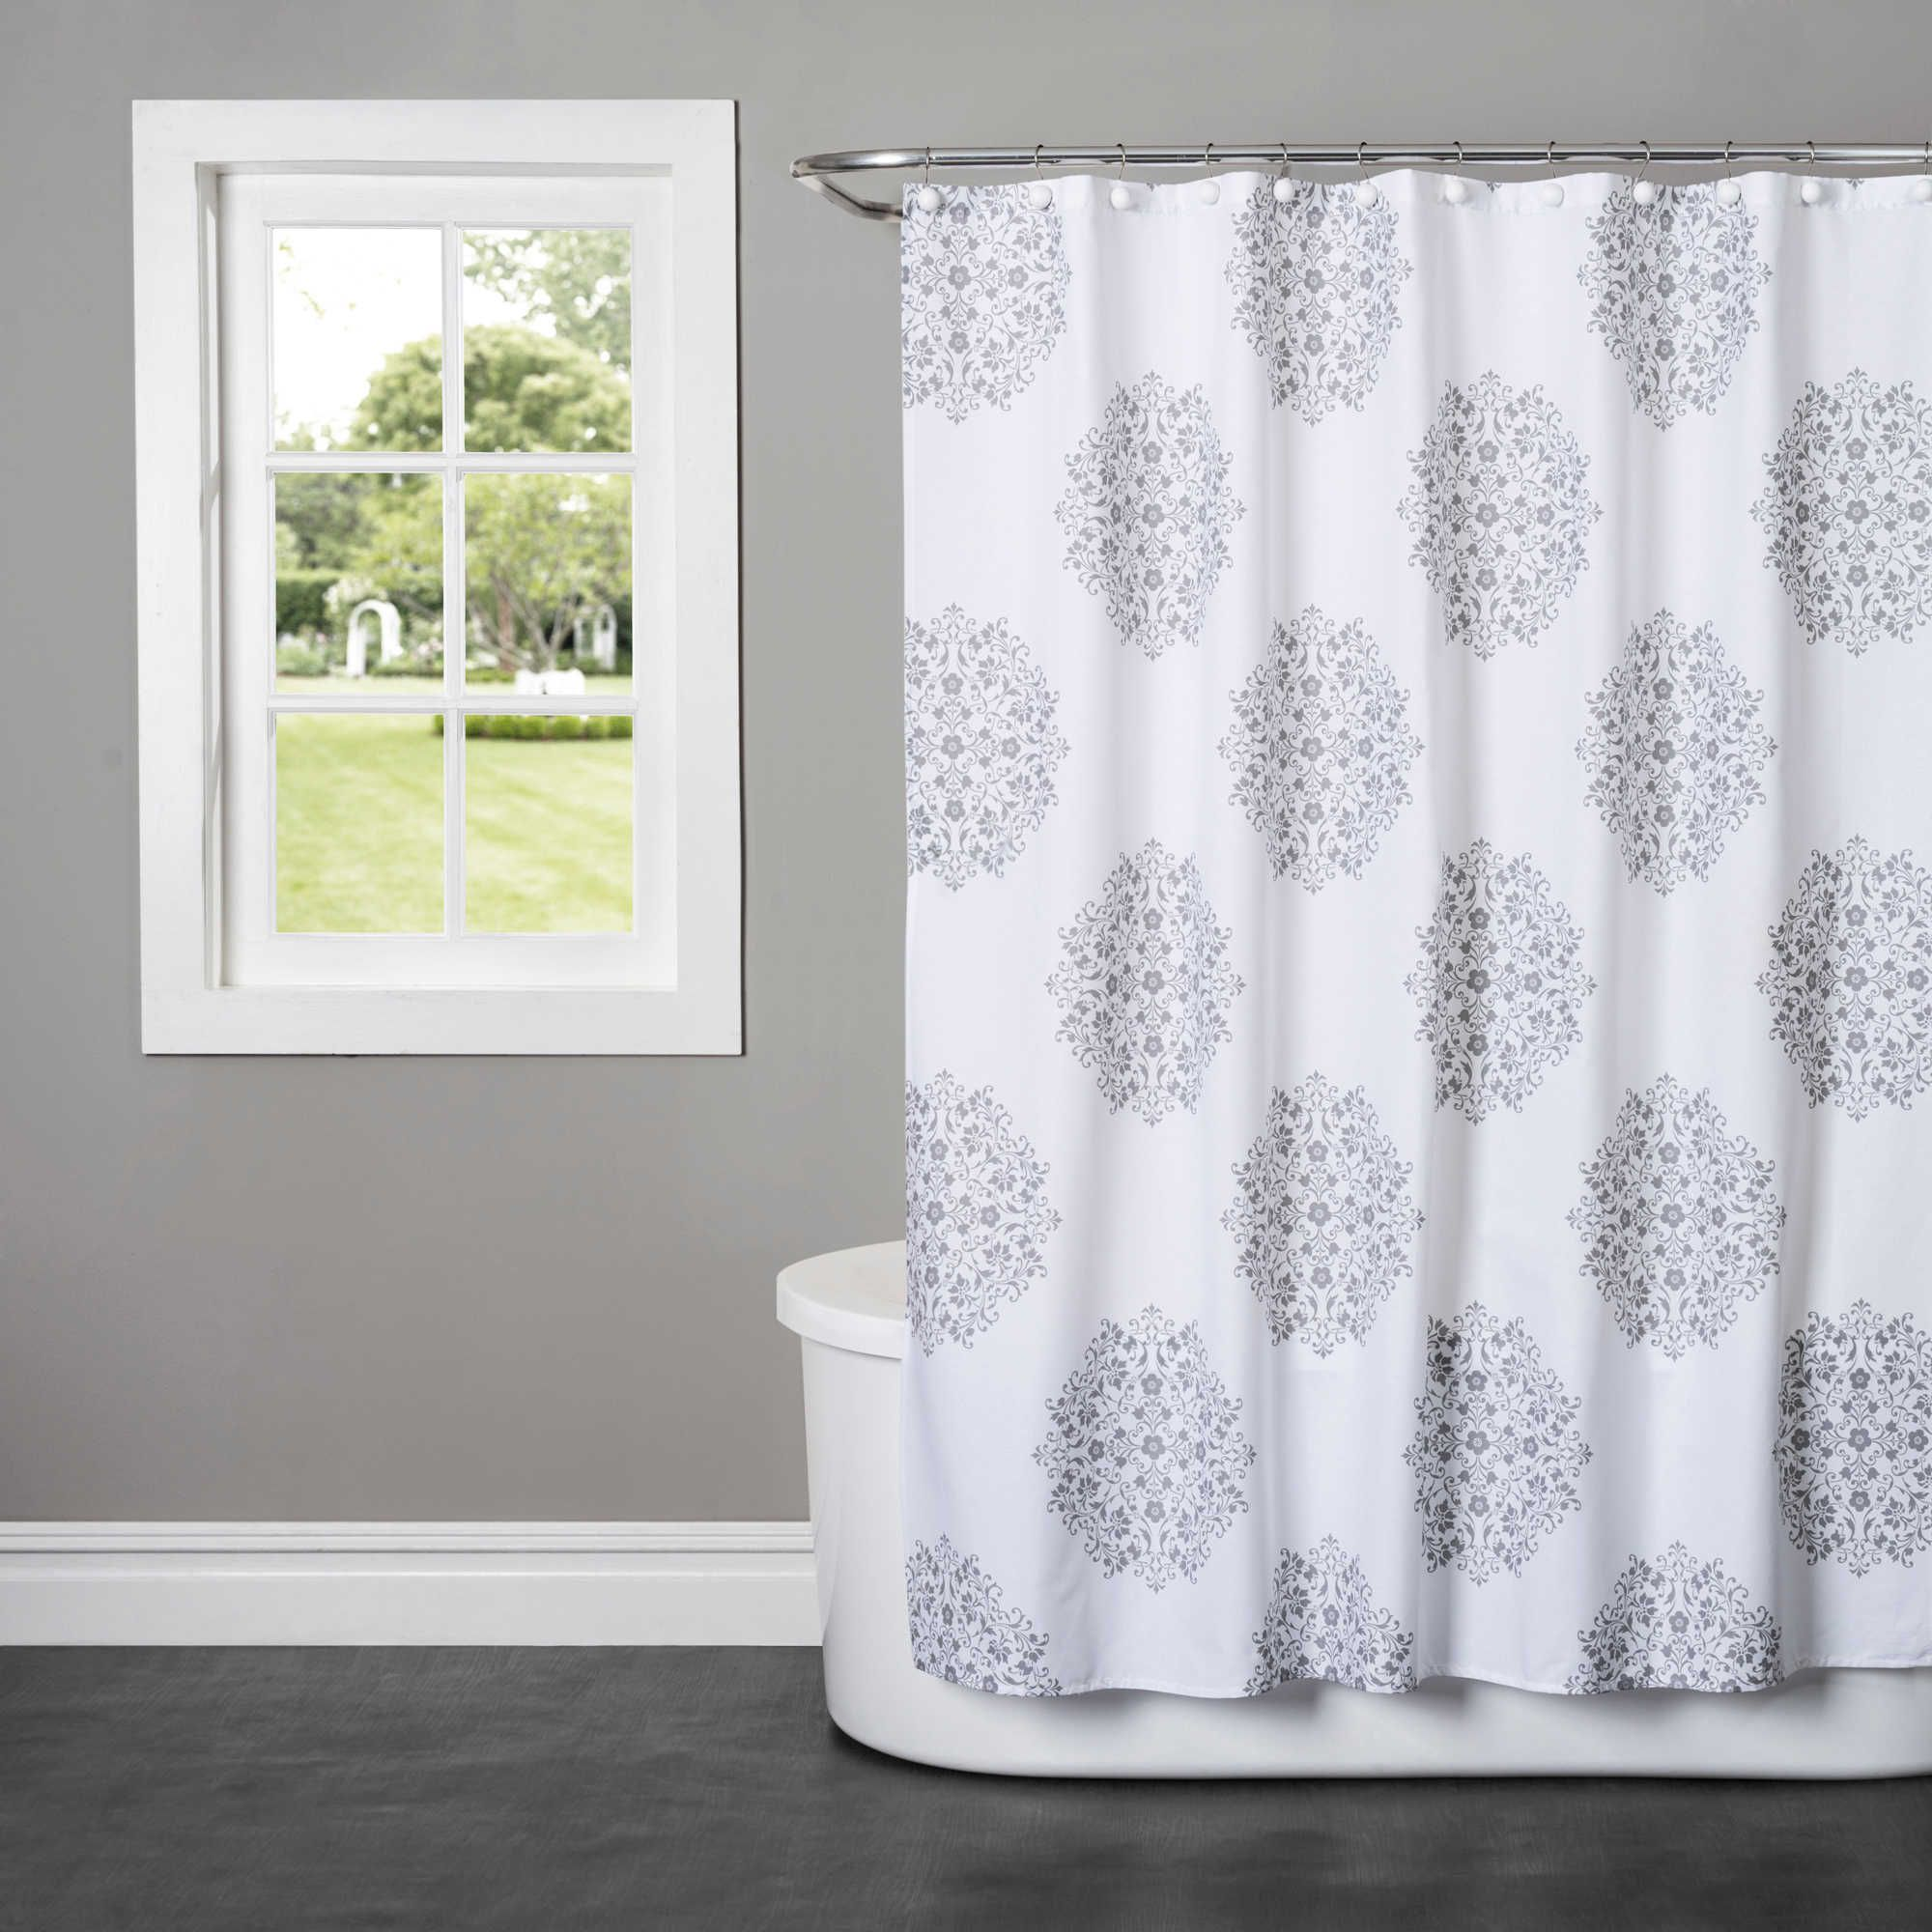 Benito 54 Inch X 78 Shower Curtain